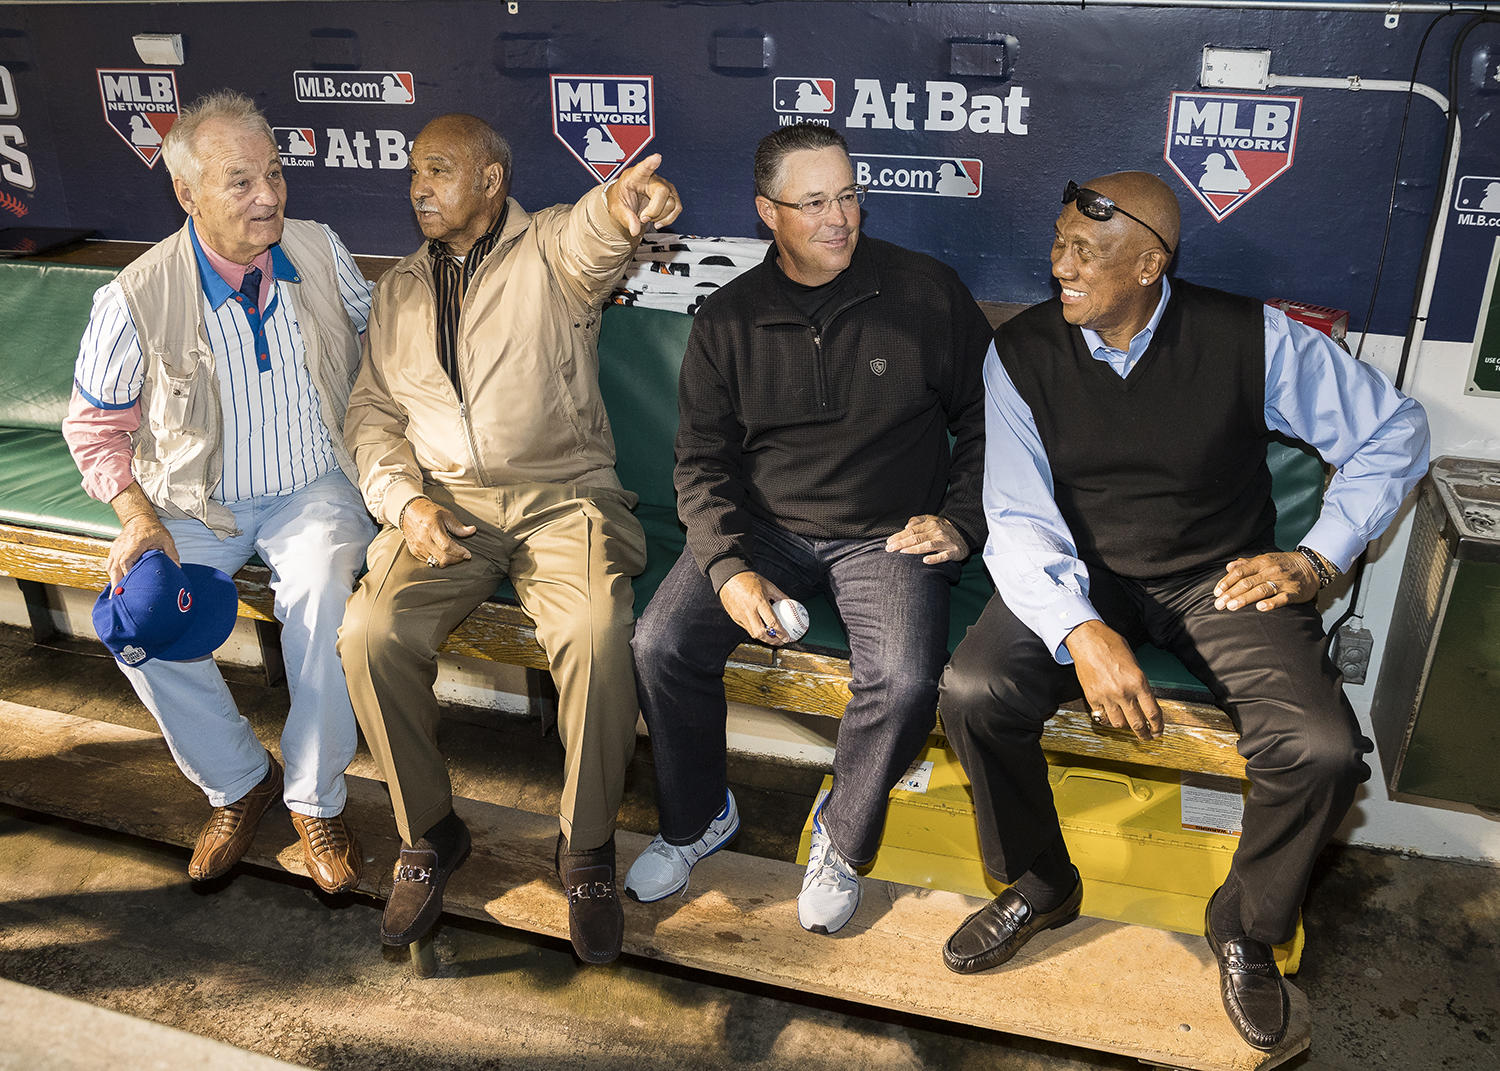 Actor Bill Murray (far left) and Hall of Famers (l to r) Billy Williams, Greg Maddux and Fergie Jenkins talk in the dugout before the start of Game 4 of the 2016 World Series between the Cleveland Indians and the Chicago Cubs at Wrigley Field on Oct. 29, 2016 in Chicago. (Jean Fruth / National Baseball Hall of Fame and Museum)